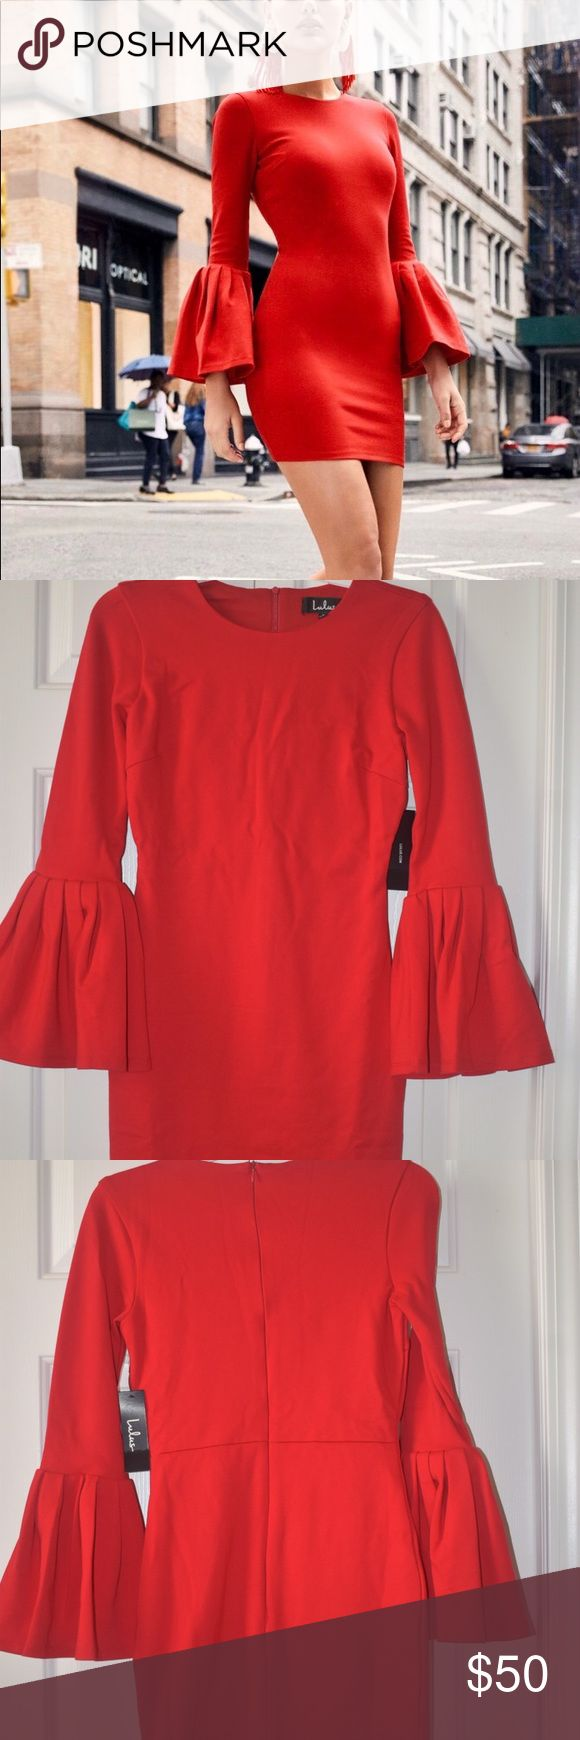 Lulus double flare red long sleeve bodycon dress BRAND NEW WITH TAGS Bodycon dress Size S Lulu's Dresses Long Sleeve #bodycondresslongsleeve